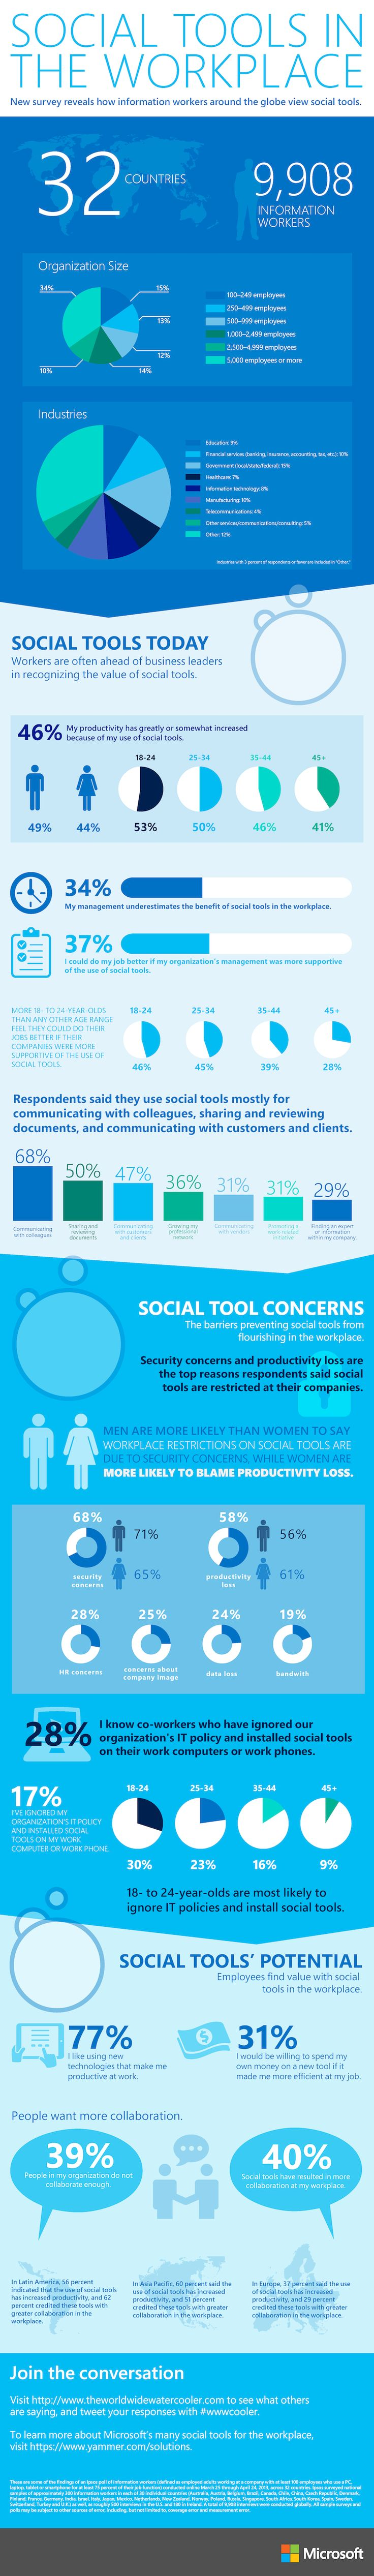 [infographie] #SocialTools in the #Workplace